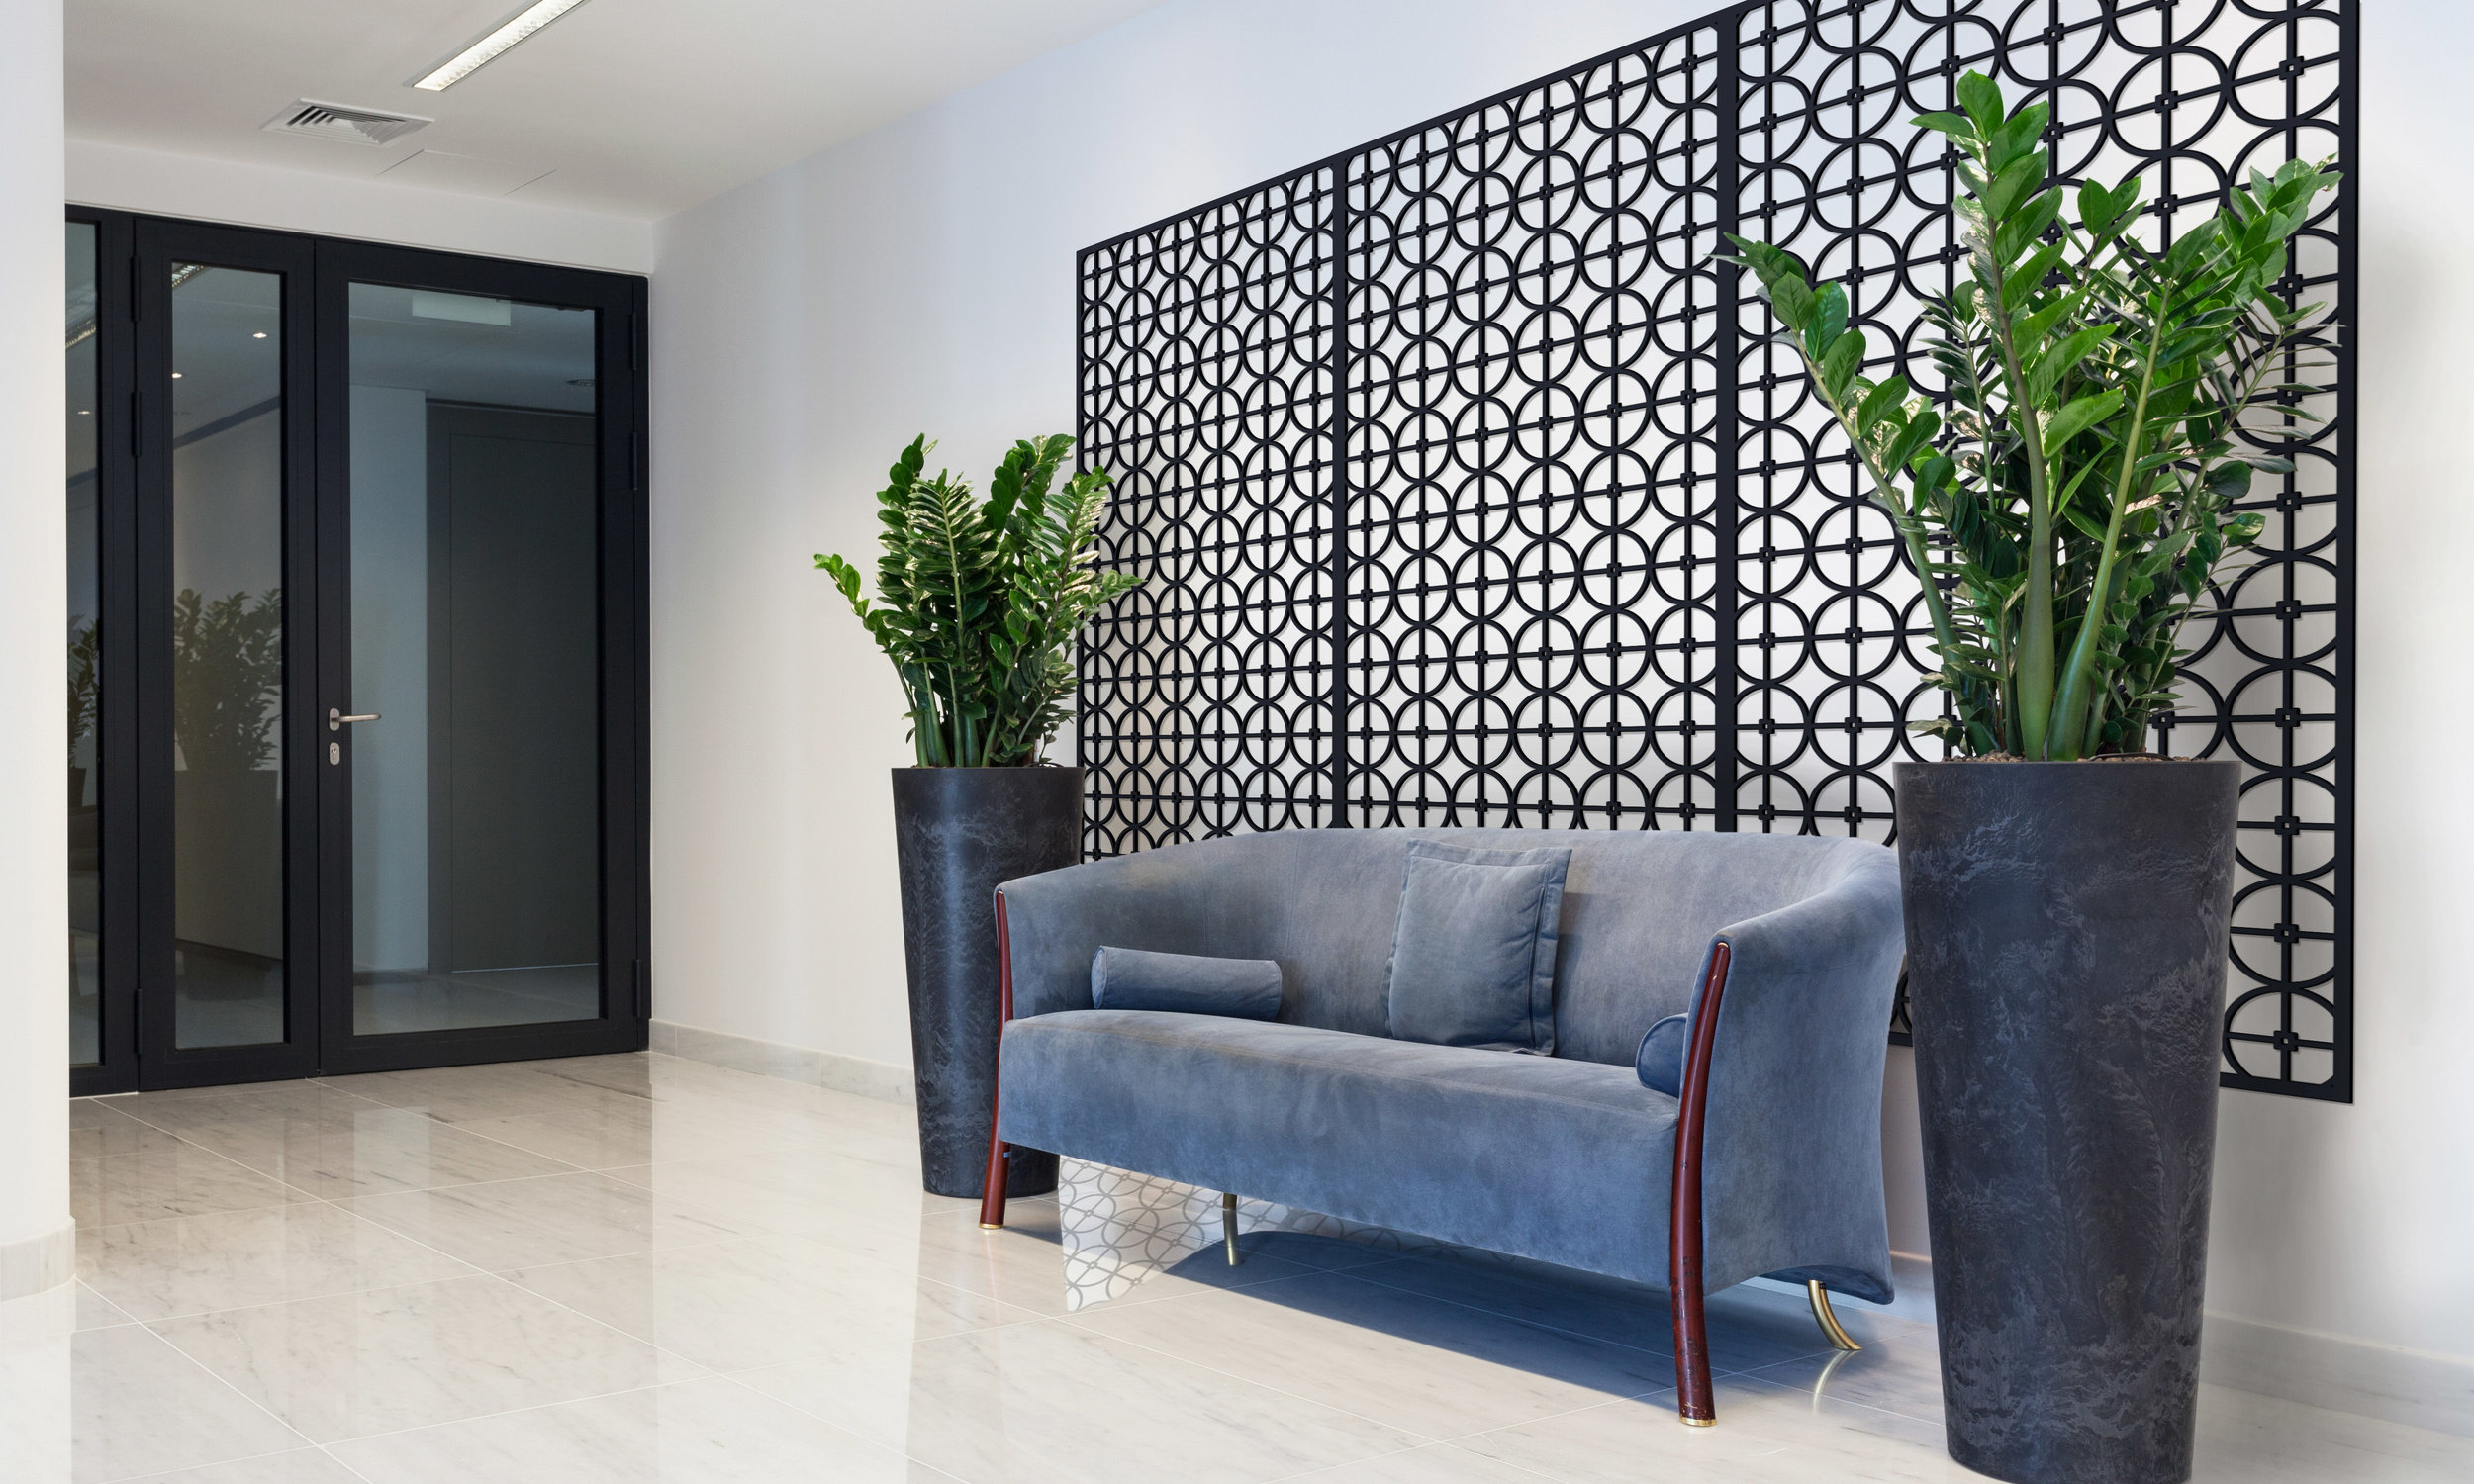 Installation Rendering B   Circles Grille decorative office wall panel - painted